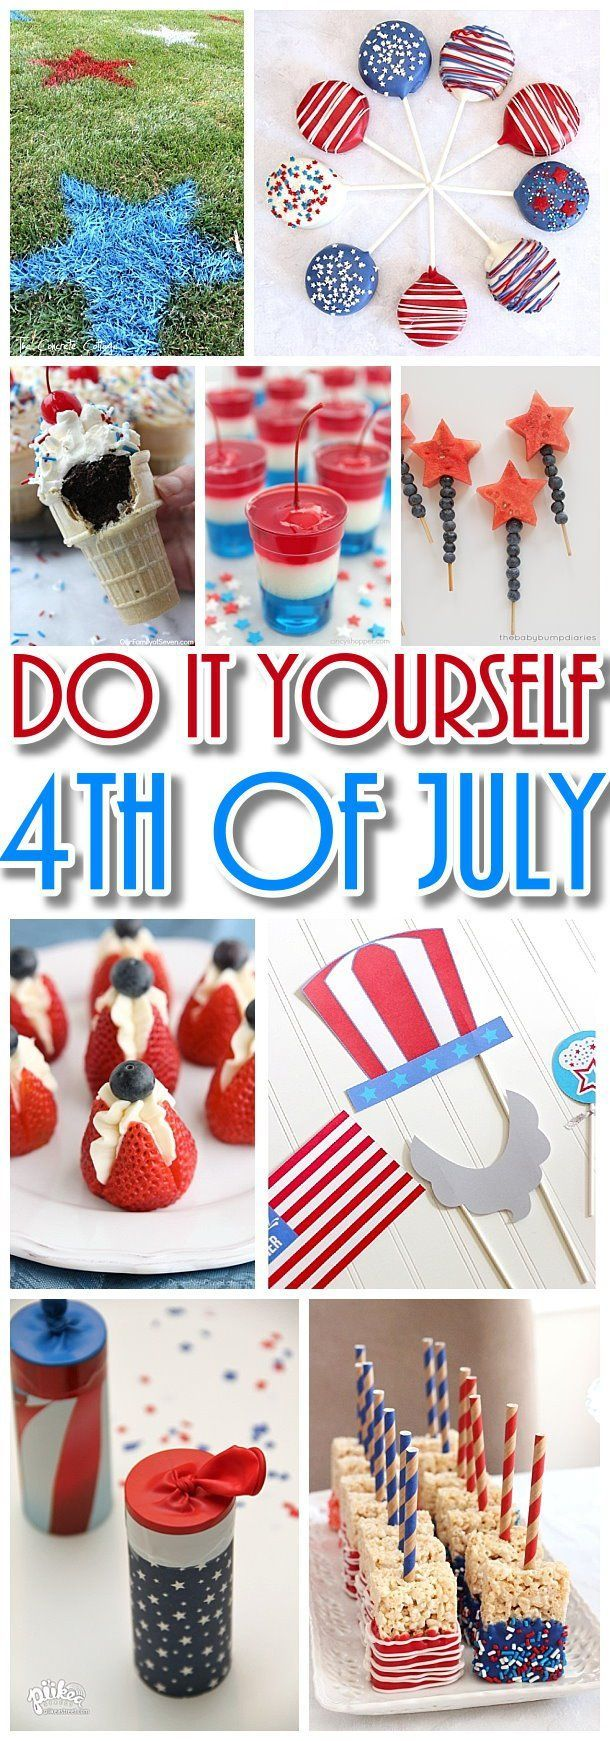 Best 25+ Usa party ideas on Pinterest | 4th of july party, American party  and Patriotic party